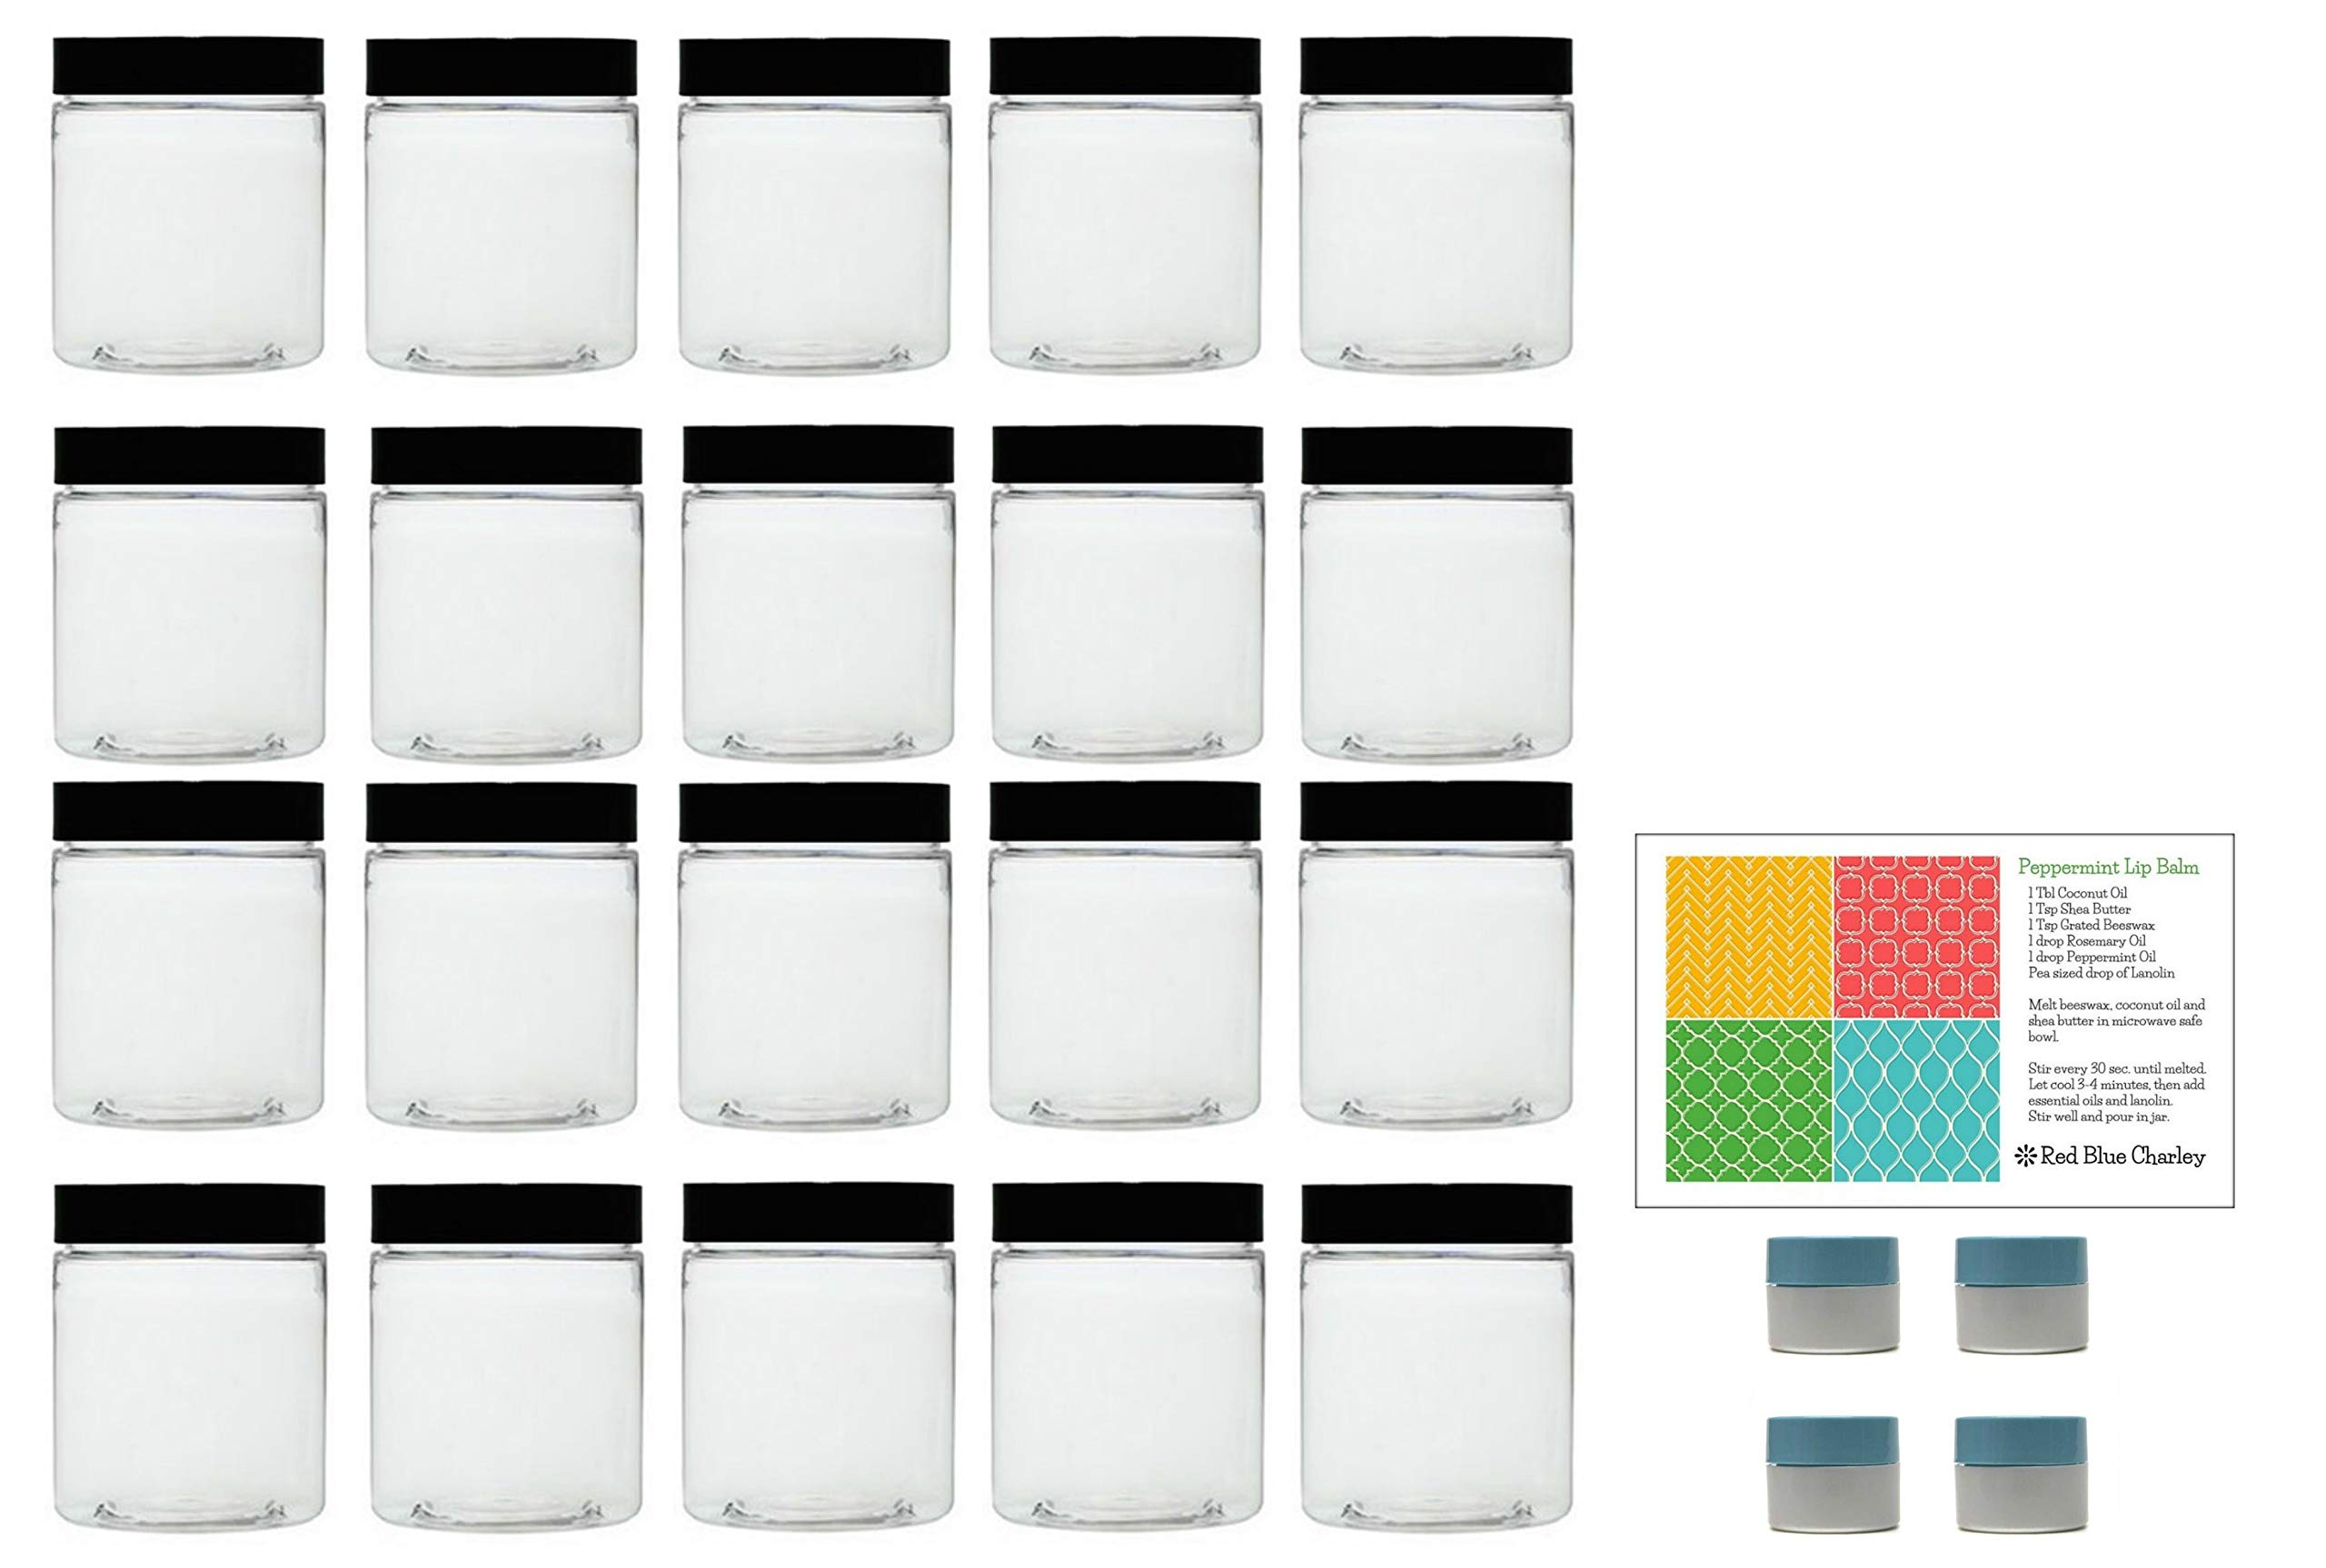 Clear 8 oz Plastic Jars with Black Lids (20 pk) with Mini Jars - PET Round Refillable Containers